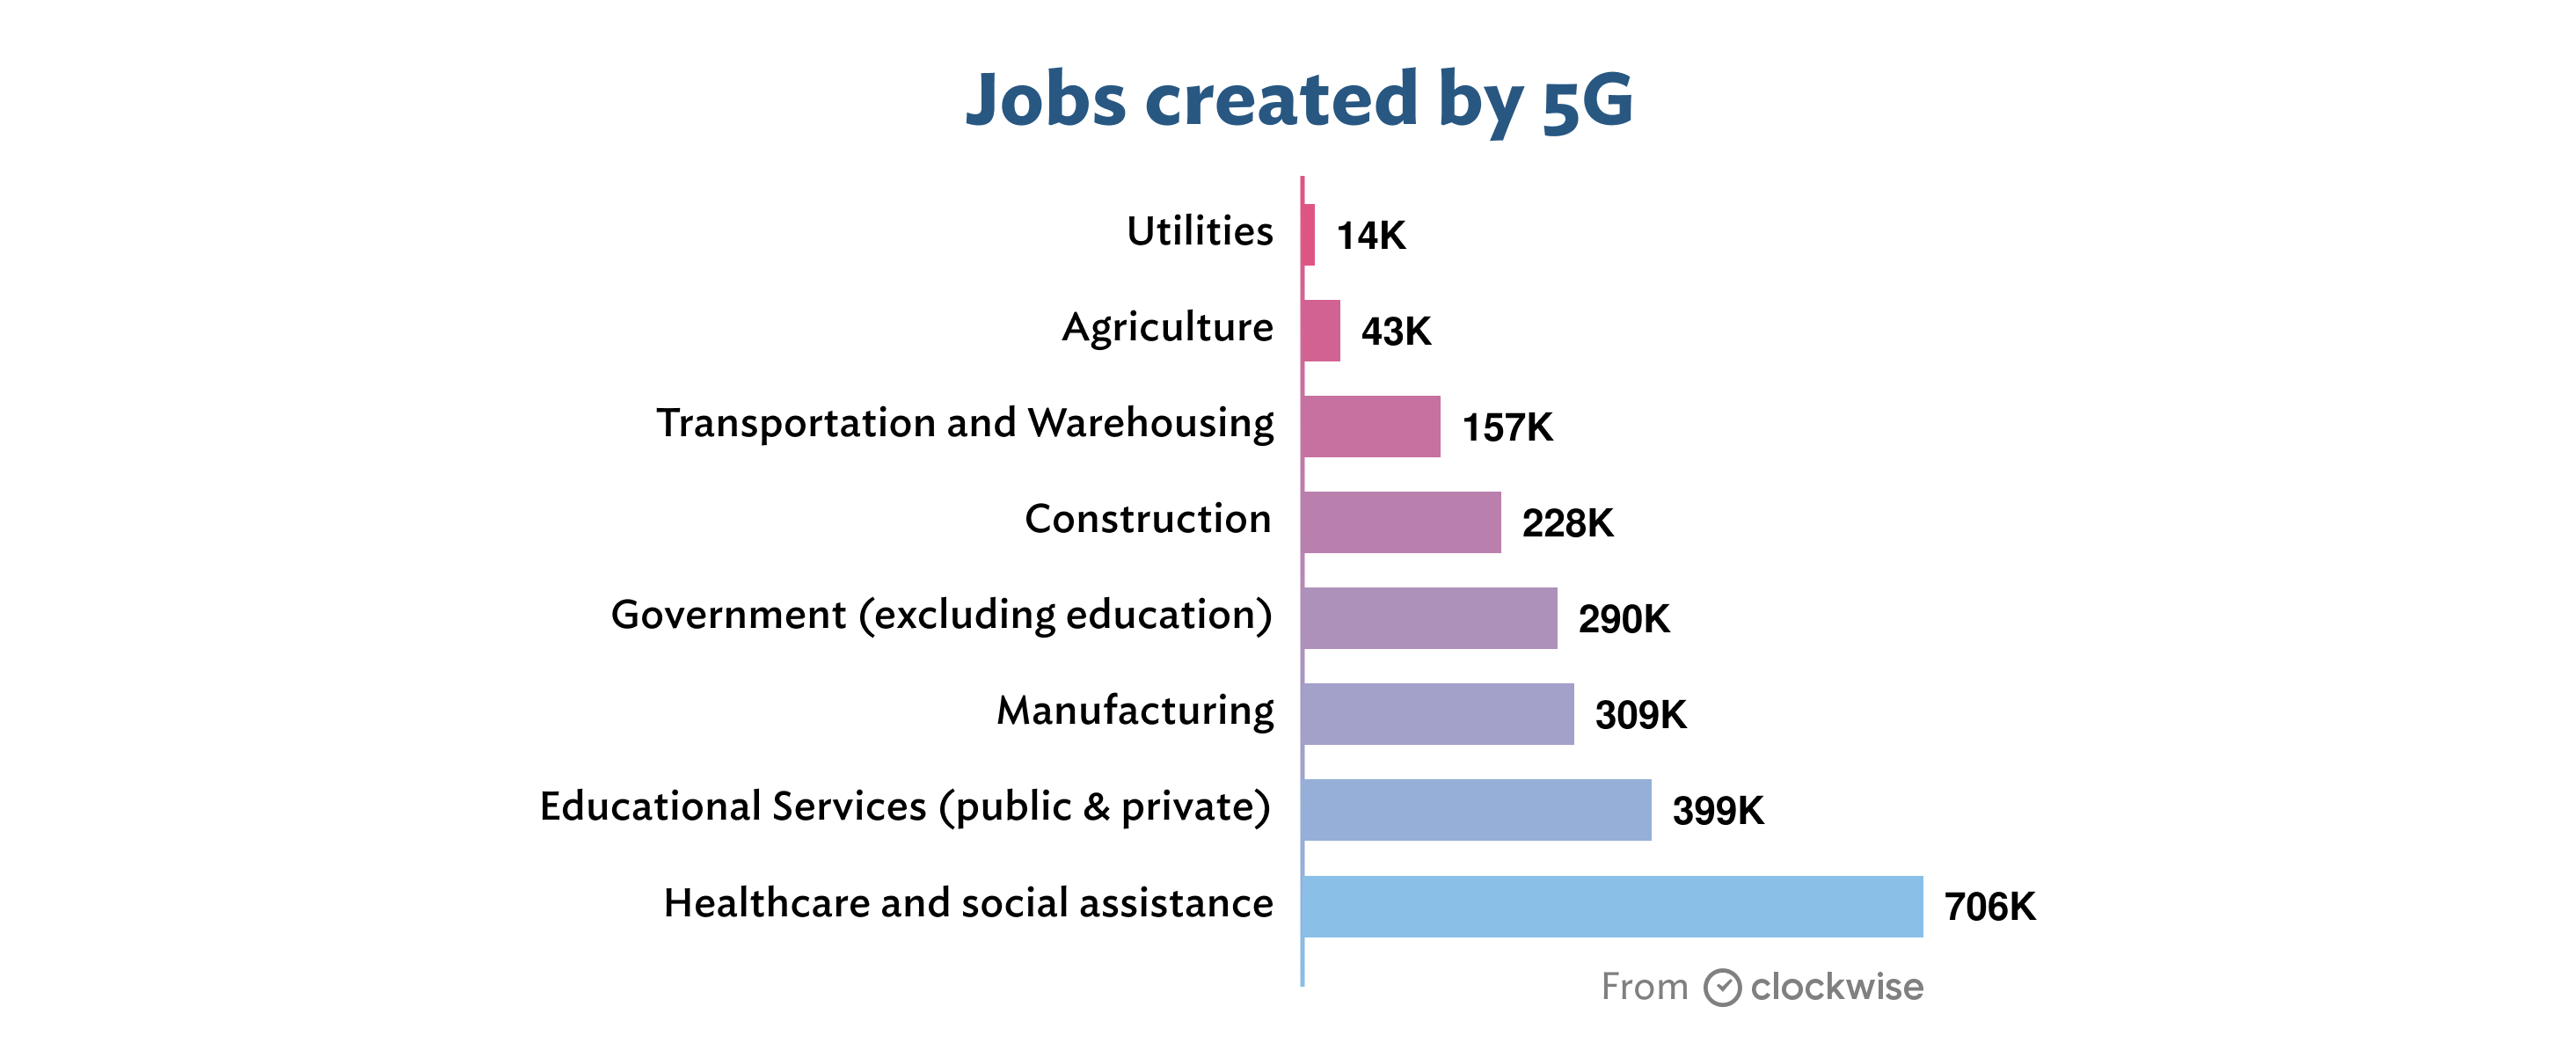 Jobs created by 5 G by industry